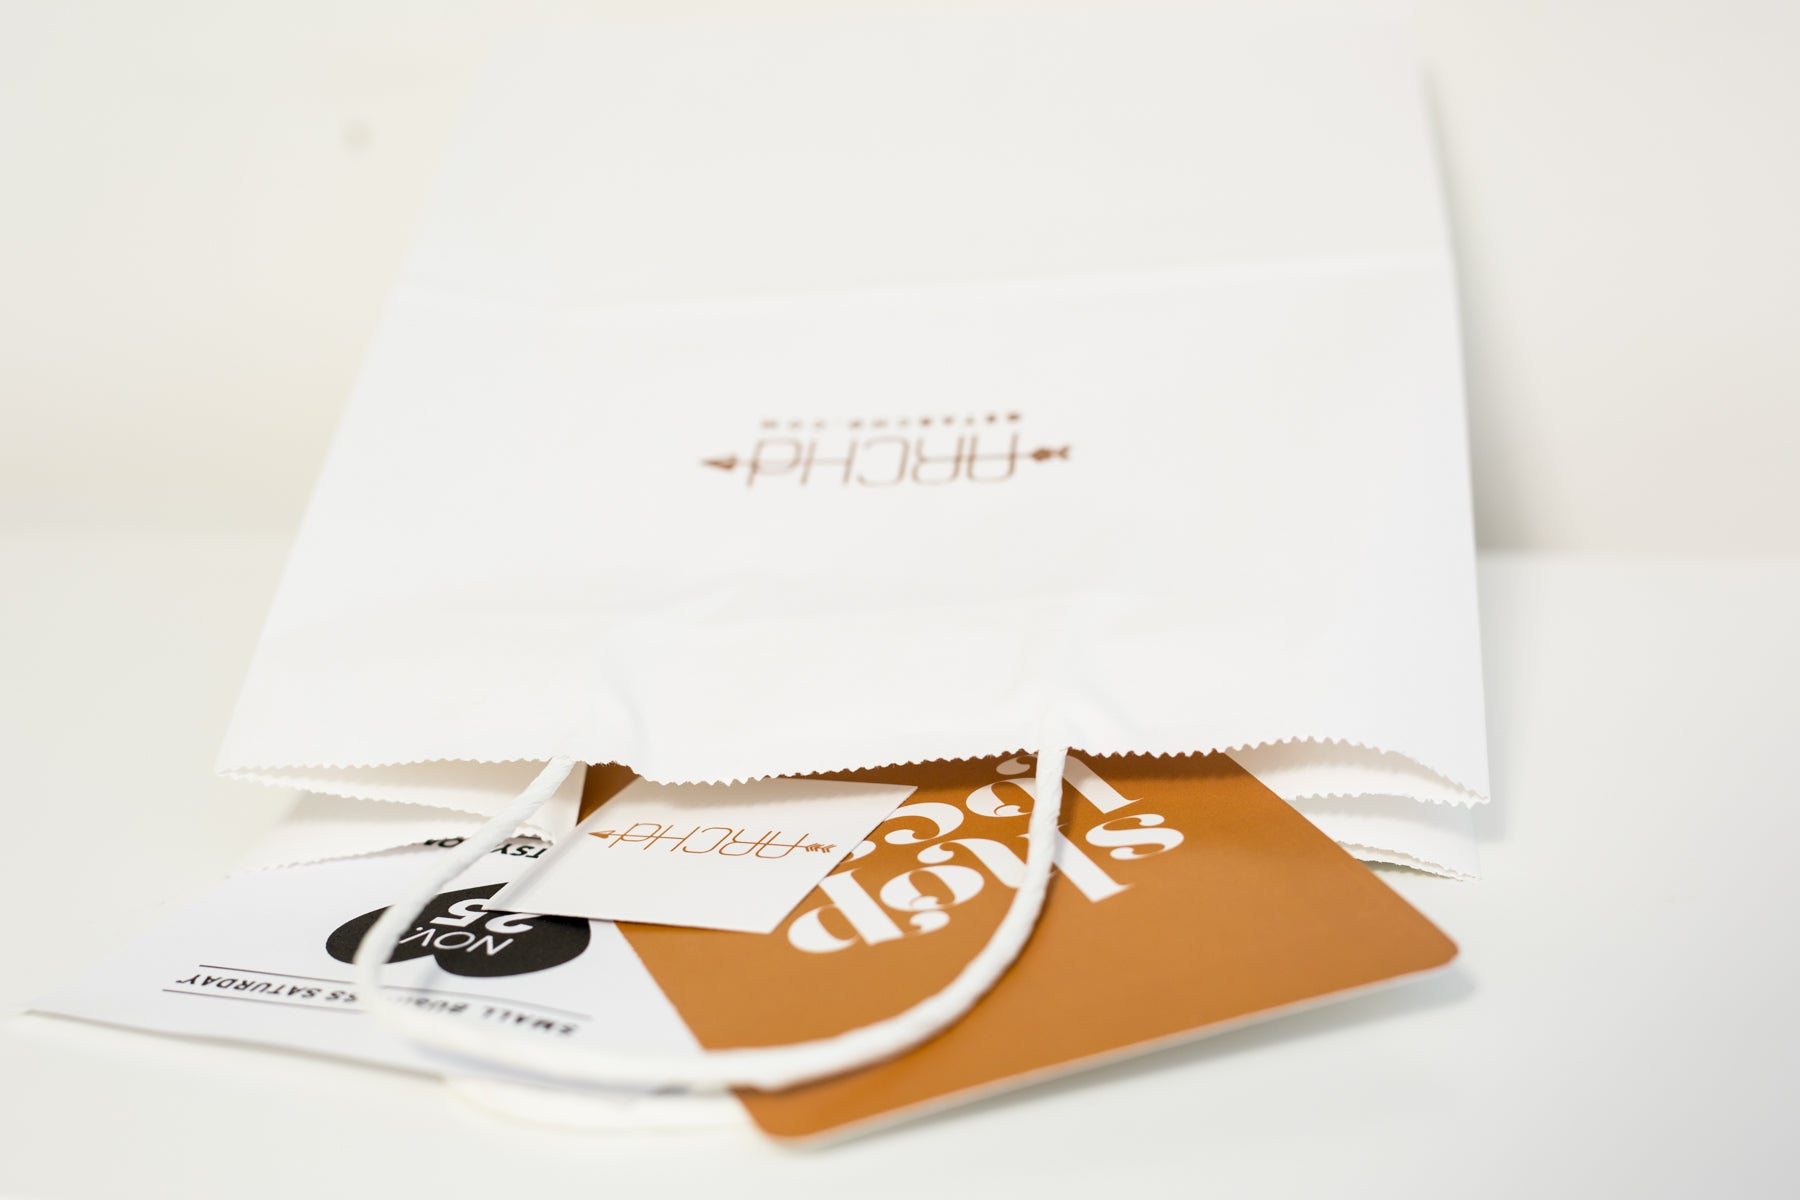 Vendor booth idea tip stamp logo on white paper bags for customers ARCHd